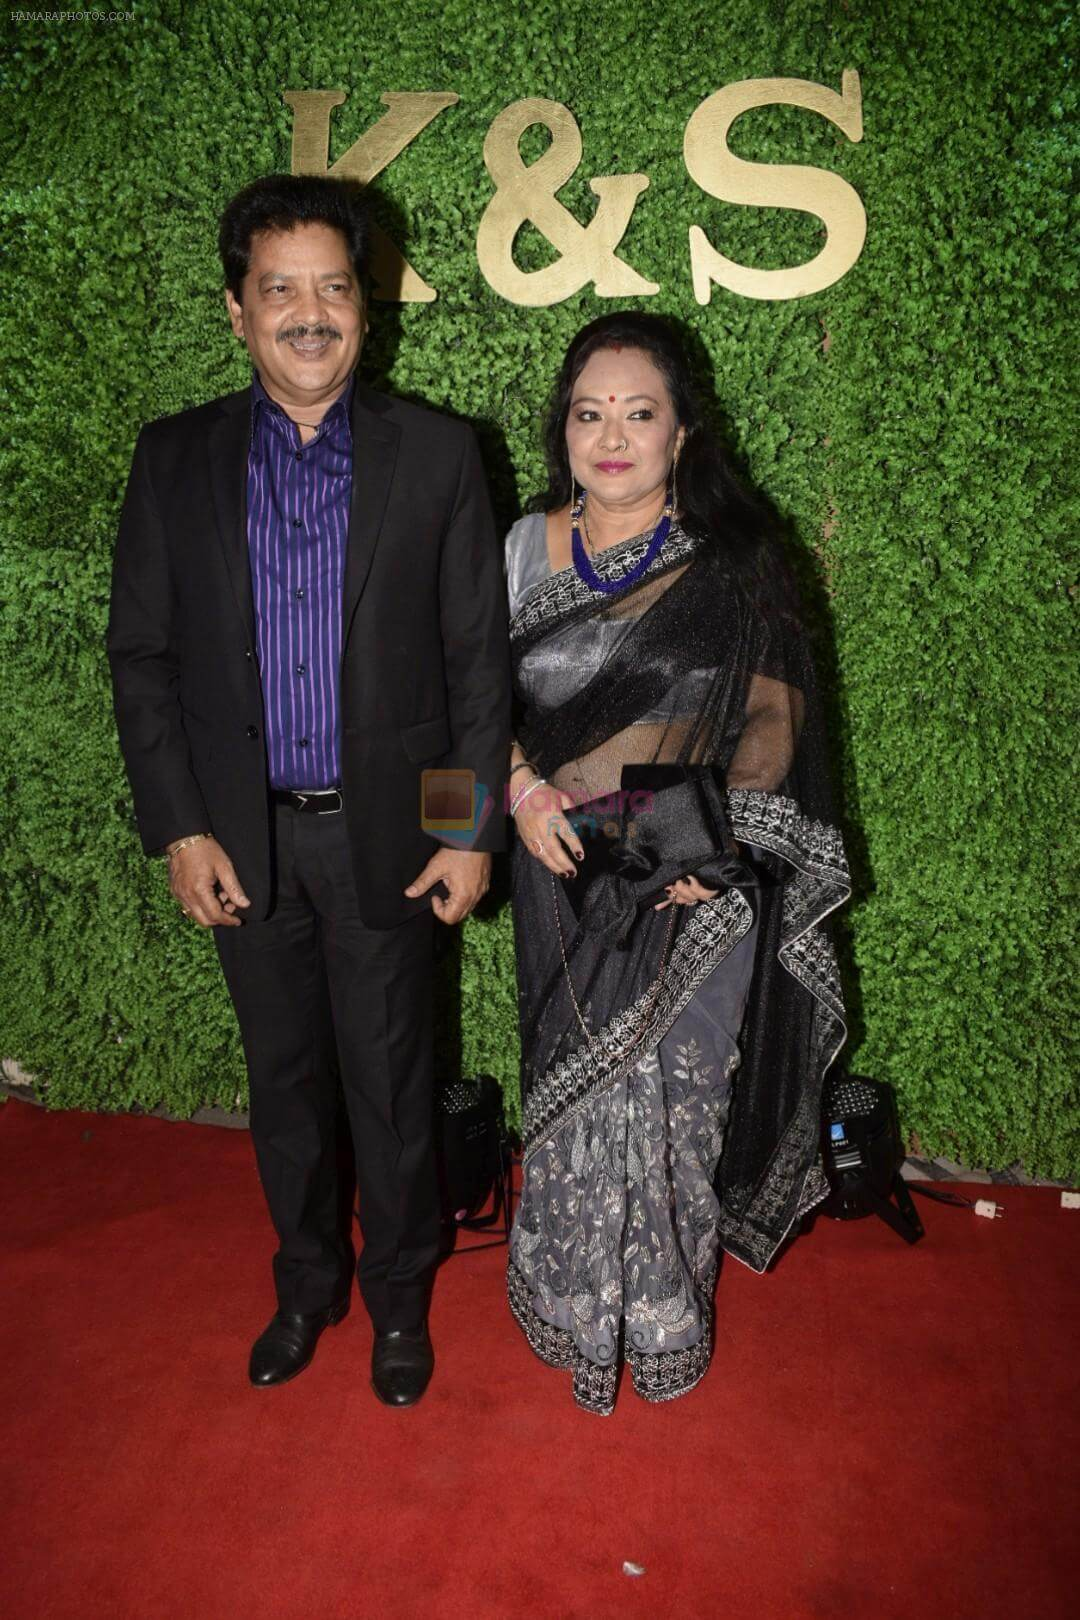 Udit Narayan Song, Son, Age, Wife, Singer, Image(photos), Biography, Family, Net Worth, Date Of Birth, Birthplace, Height, Daughter, History, Awards, Youtube, Wiki, Twitter, Facebook, Instagram, Imdb,